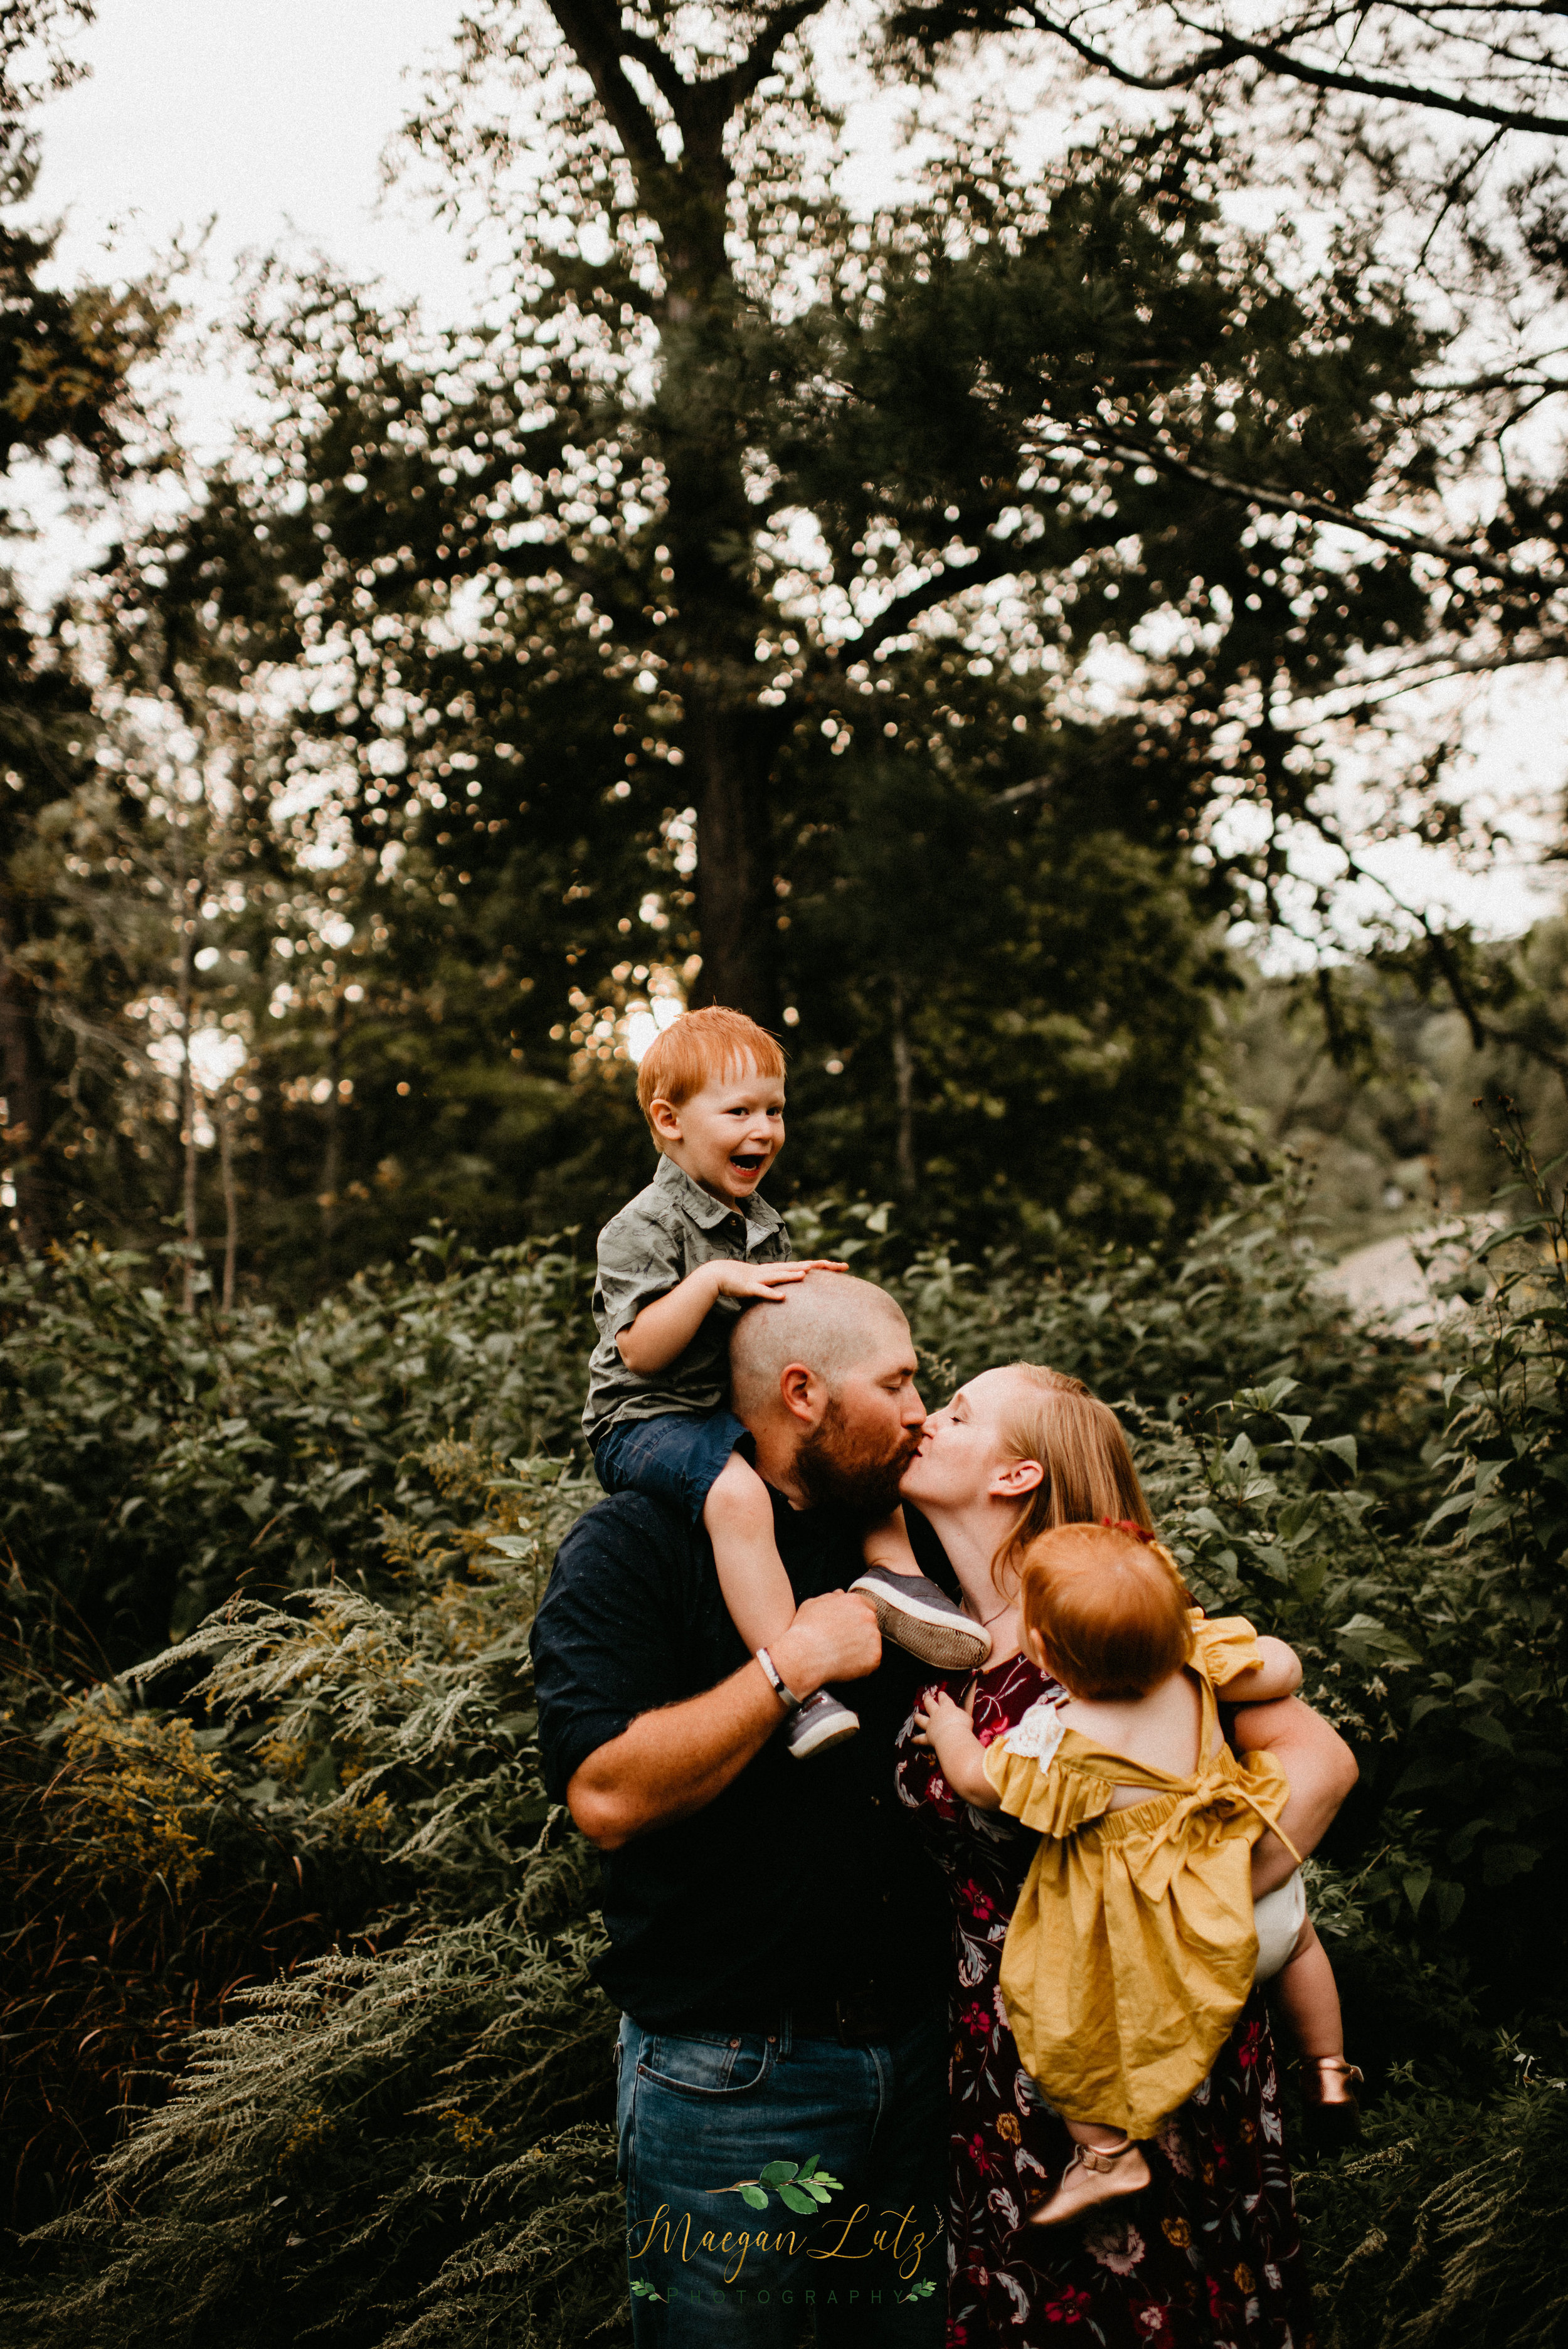 NEPA Family photographer in Drums, PA